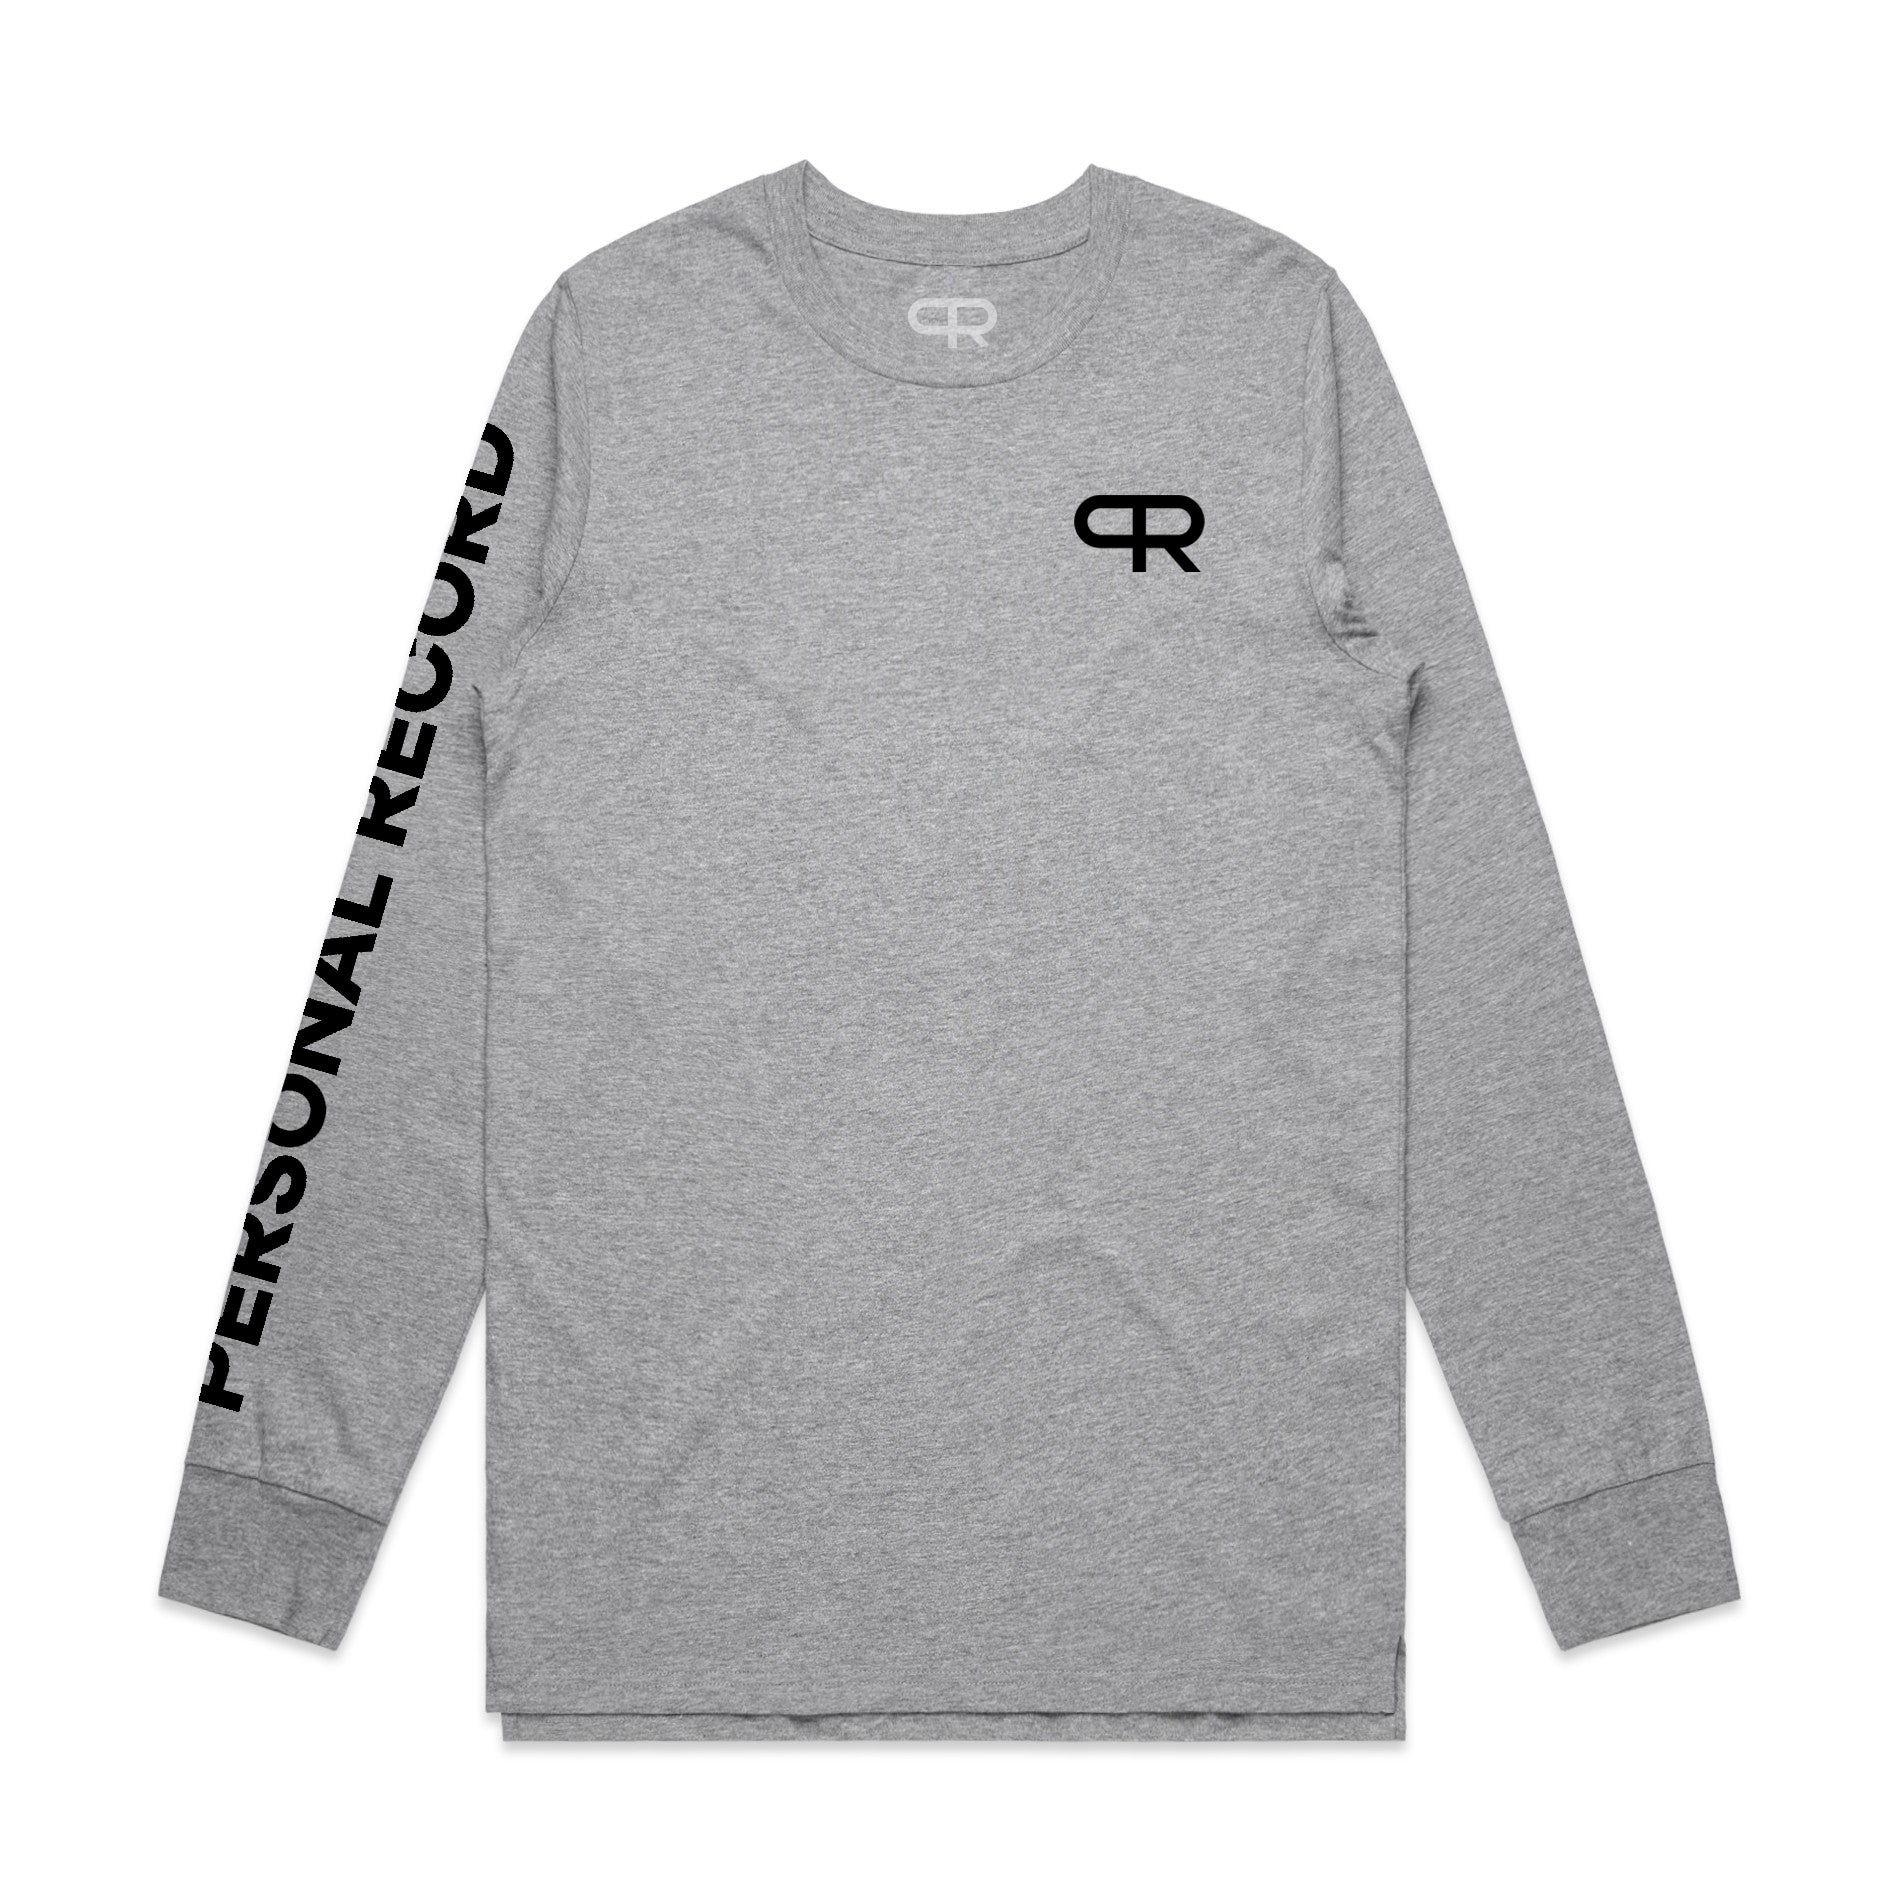 PR Long Sleeve with Sleeve Print-PR410- Heather Grey